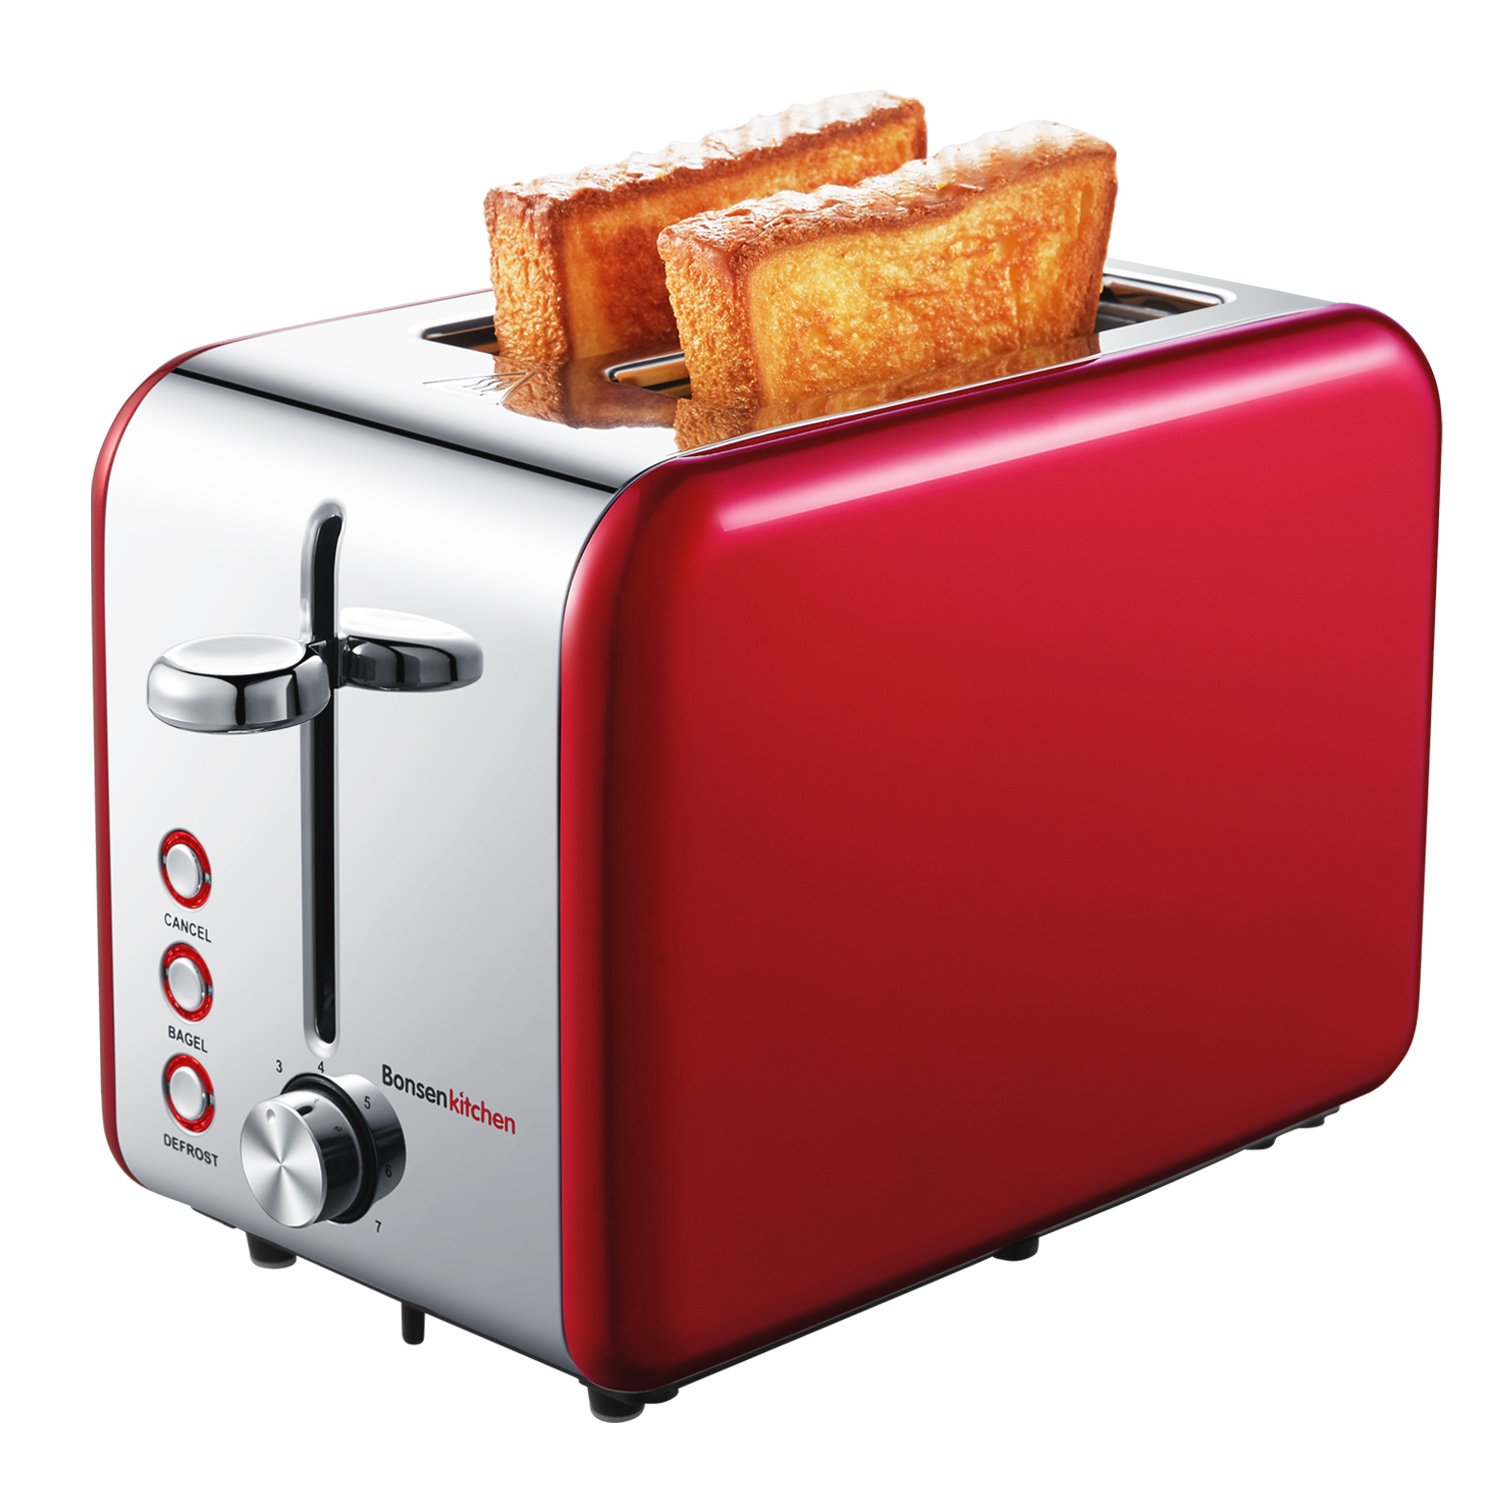 Bonsenkitchen 2-Slice Wide-Slot Toaster with Chrome Stainless Steel Housing, Defrost/Bagel/Cancel and Bread Jam Proof Function, 7 Browning Settings, Red (TR8741)